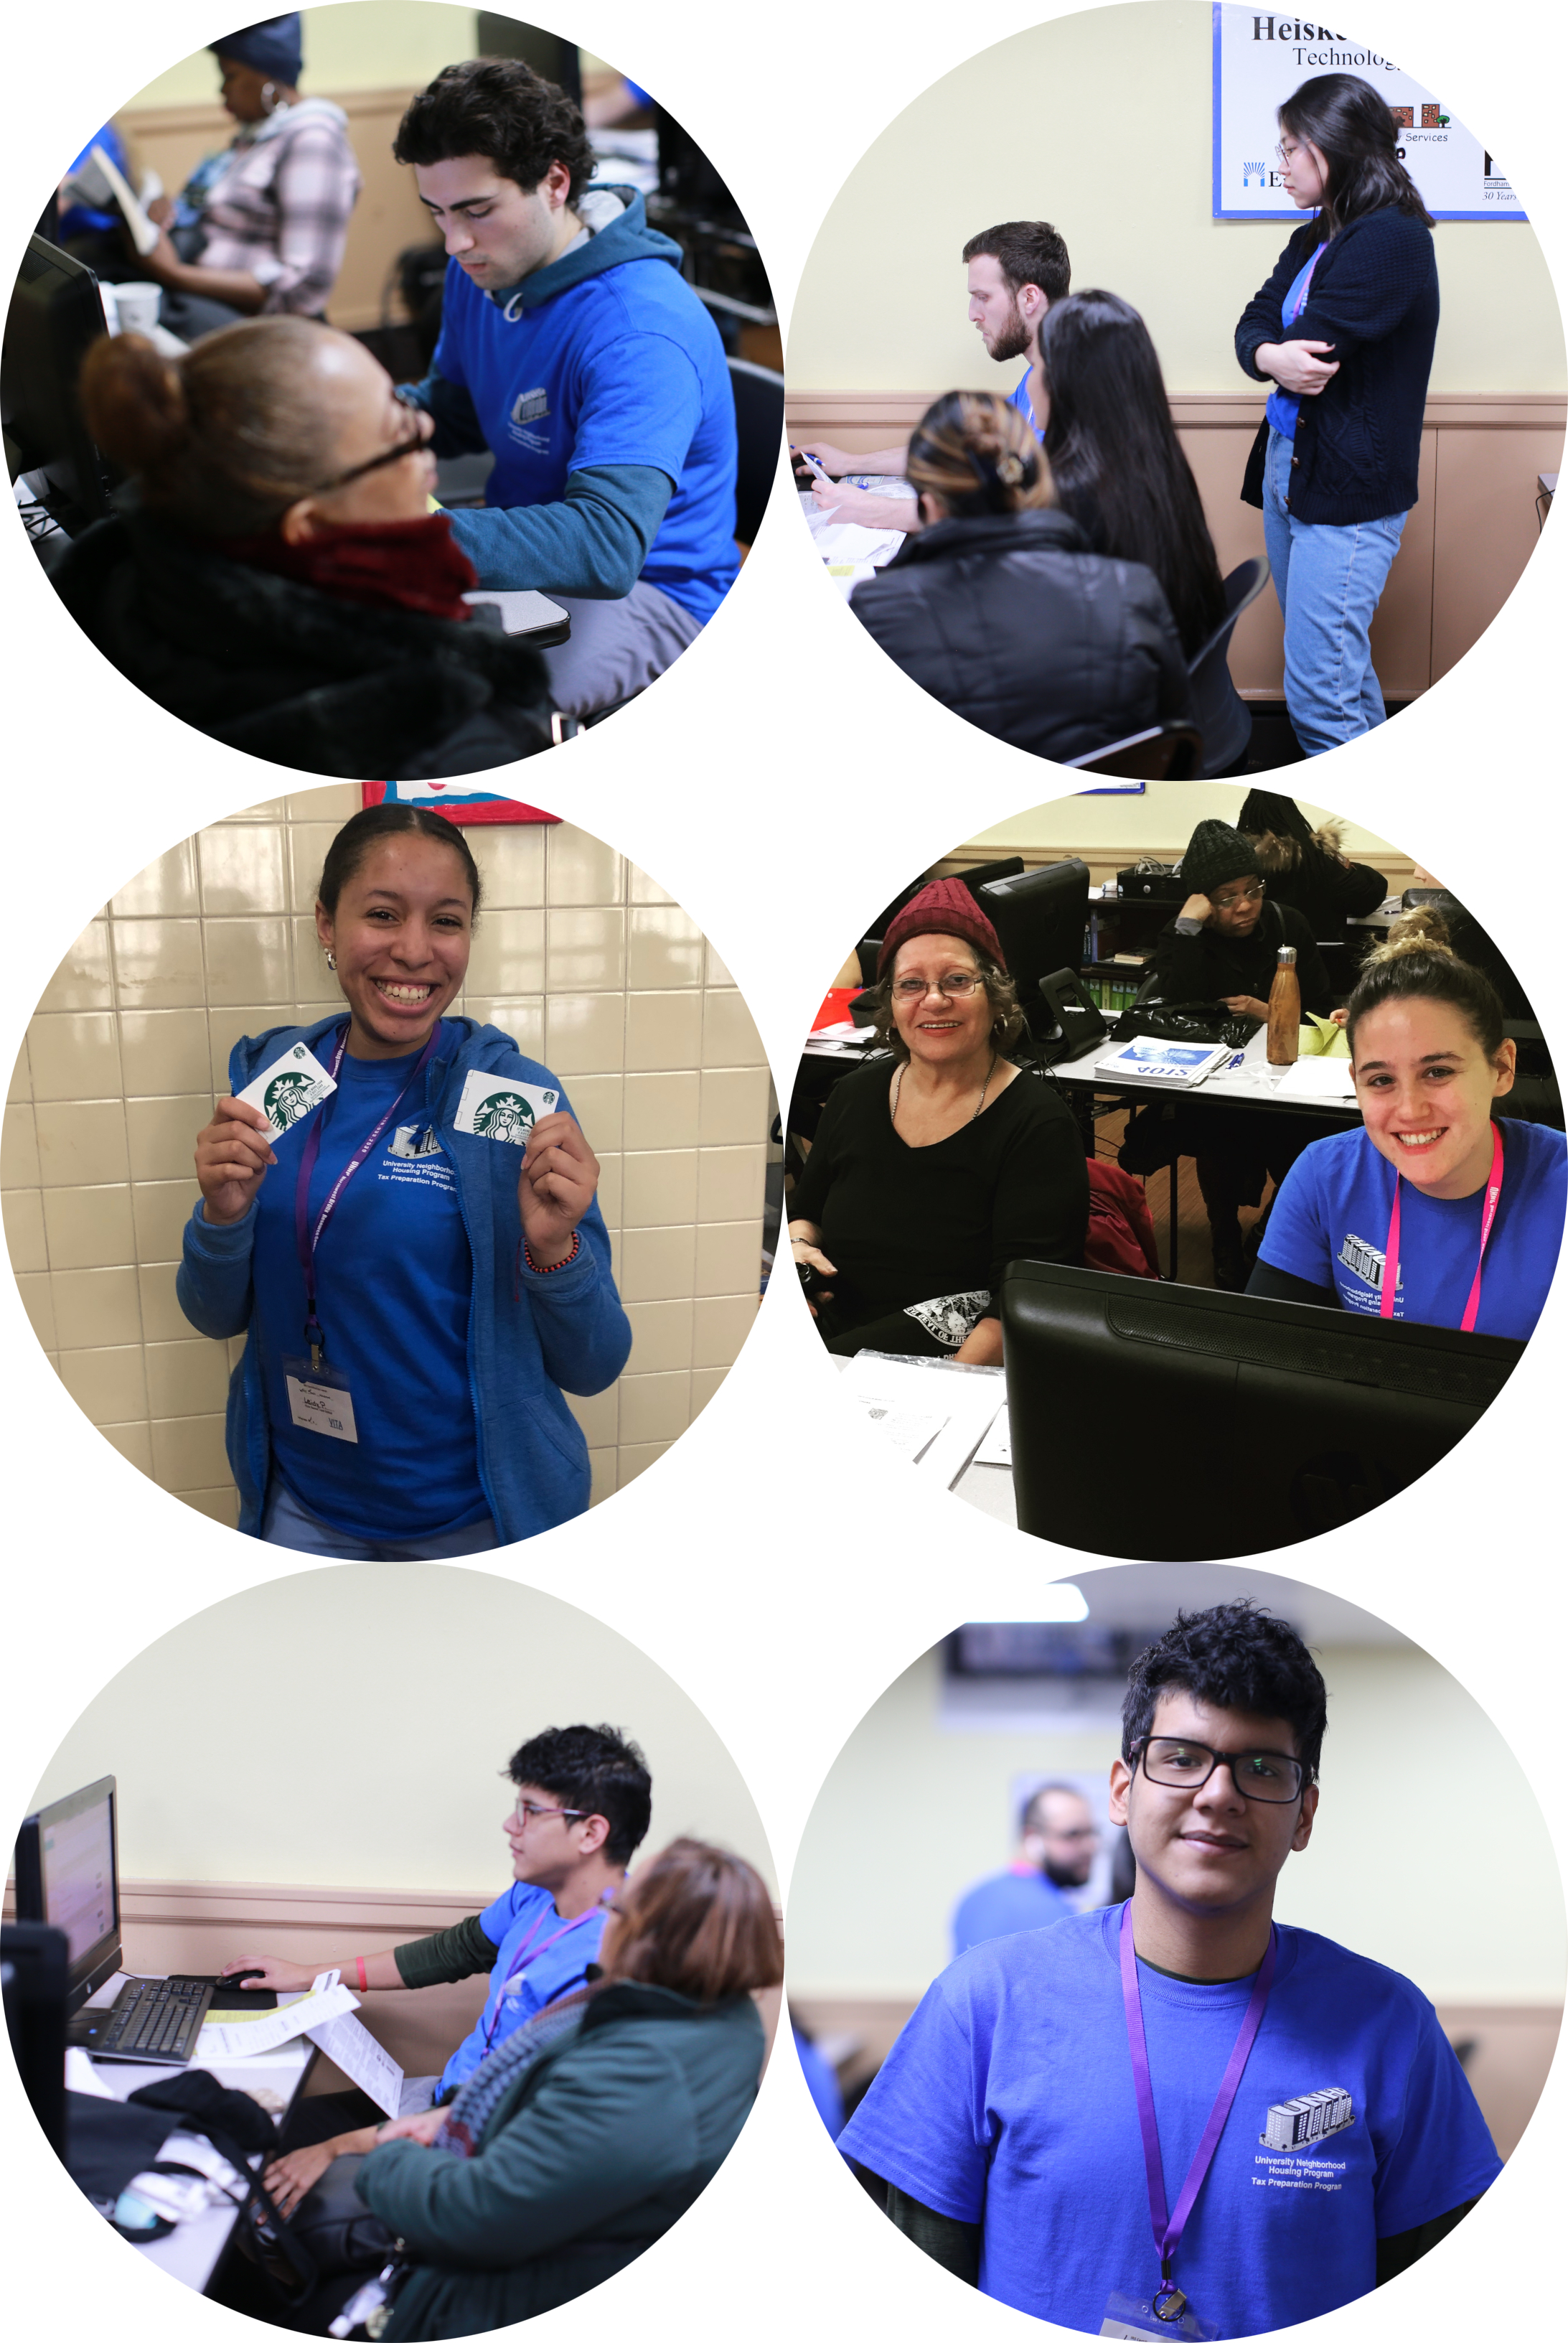 Pictured above are our student volunteer superstars! Thanks, Matthew, Jinyu, Leidy, Sarah, and Christian for logging in extra hours, taking QR training and going the extra mile for your Bronx neighbors!